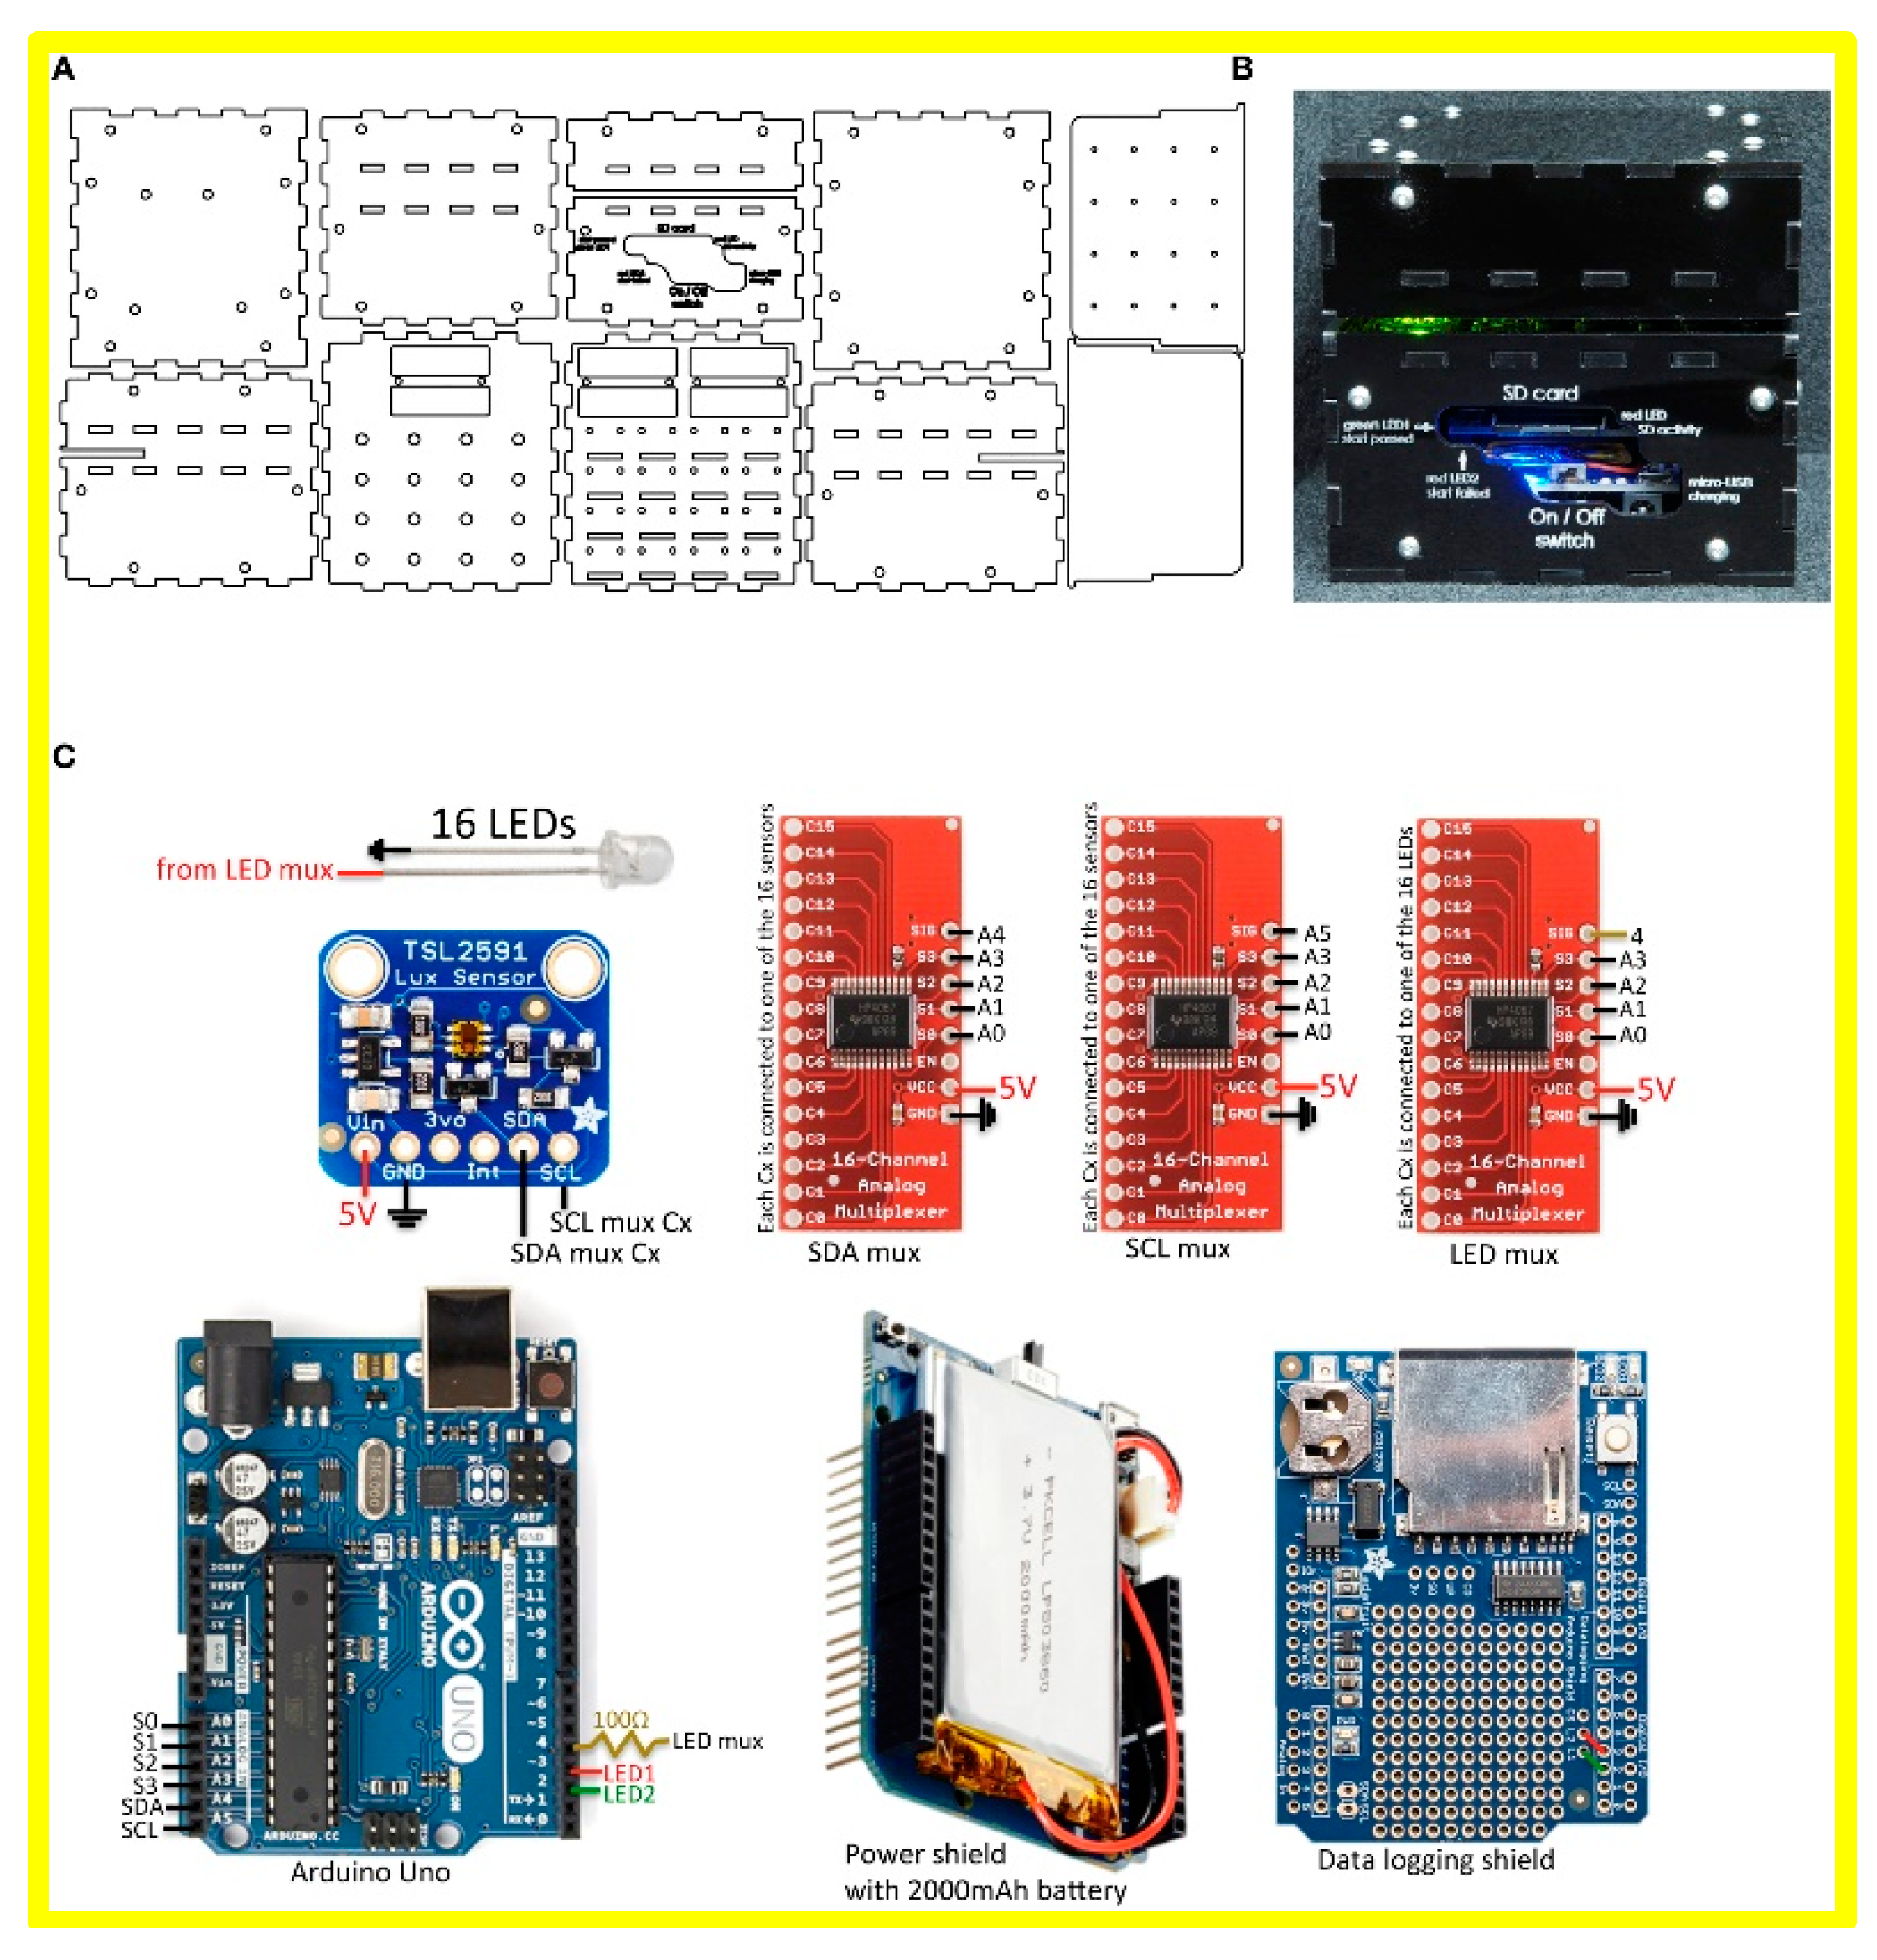 Micromachines Free Full Text From Lab On A Chip To Point Of Care Microcontroller Detecting Open Circuit Very Low Power Electrical No